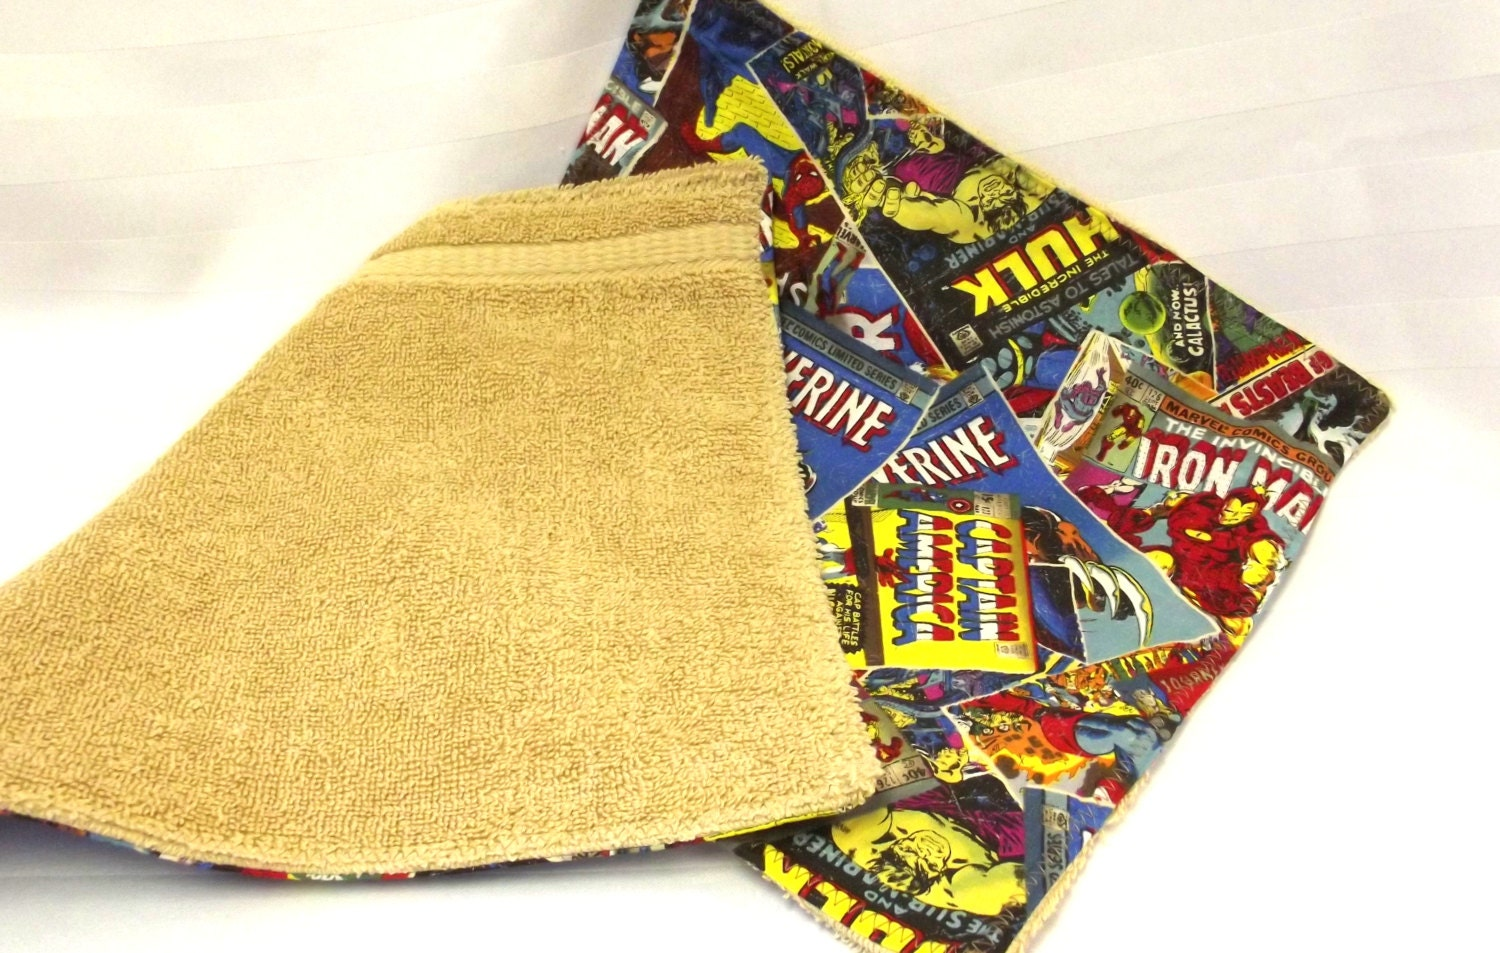 Marvel Towel Set 2 Decorative Hand Towels Dish Towels. Cheap Living Room Furniture In Pittsburgh. Show Me Your Living Room Uk. Living Room Tv Units Modern Contemporary. Living Room Sets For Small Rooms. The Living Room Tv Show First Episode. Living Room Scottsdale Az. New England Themed Living Room. Living Room Ideas Kenya